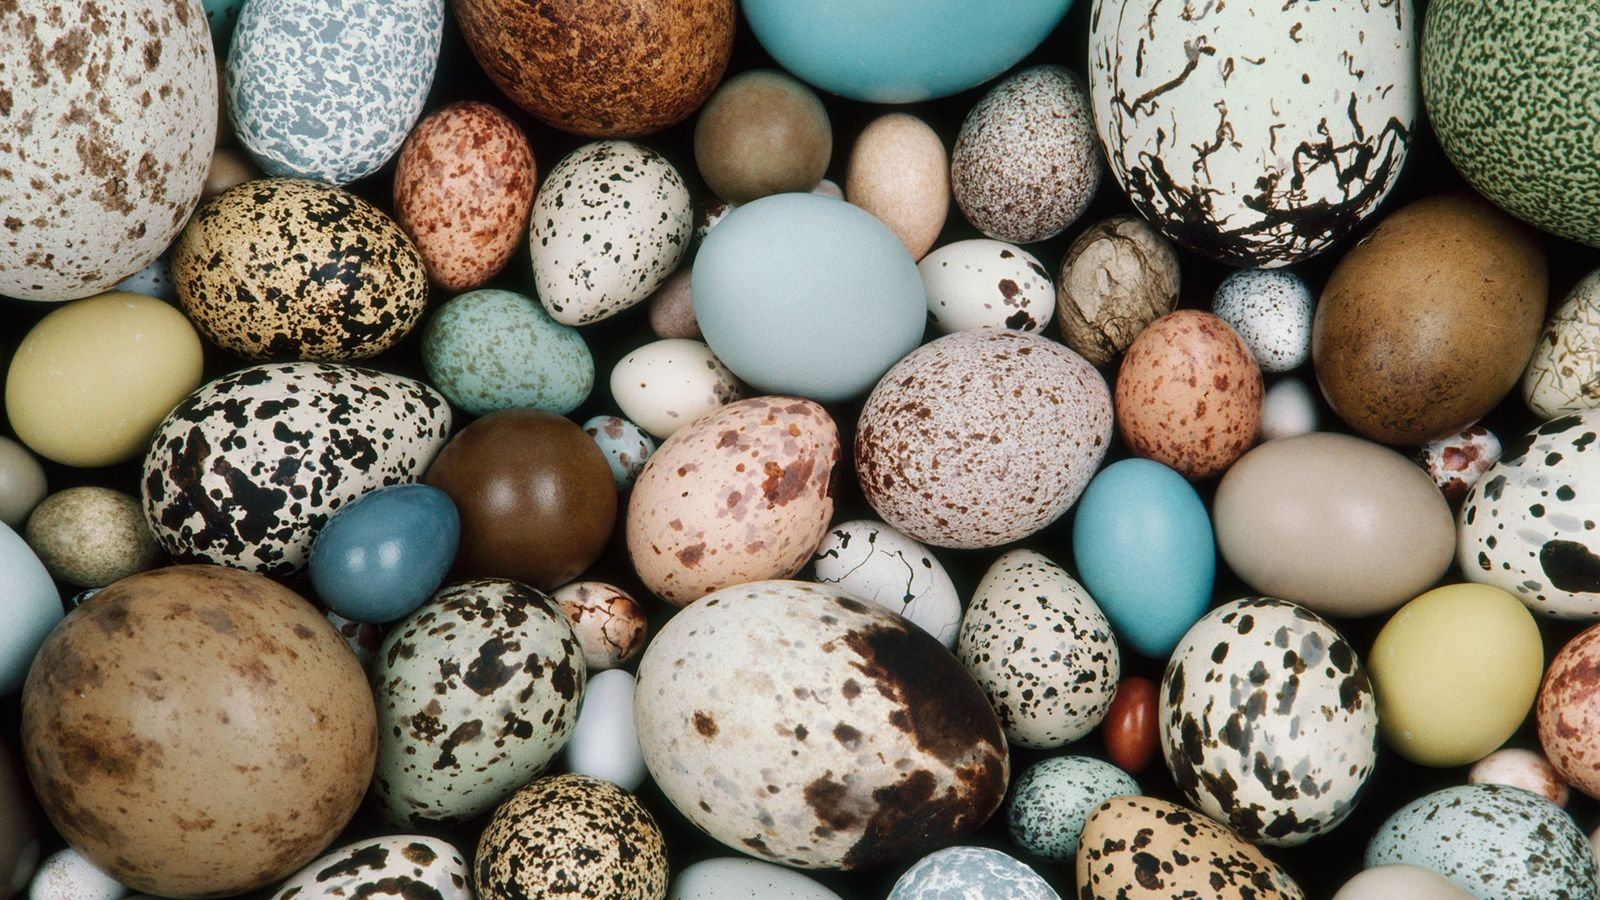 Modern bird eggs come in a huge diversity of hues, like these samples in the collection ...